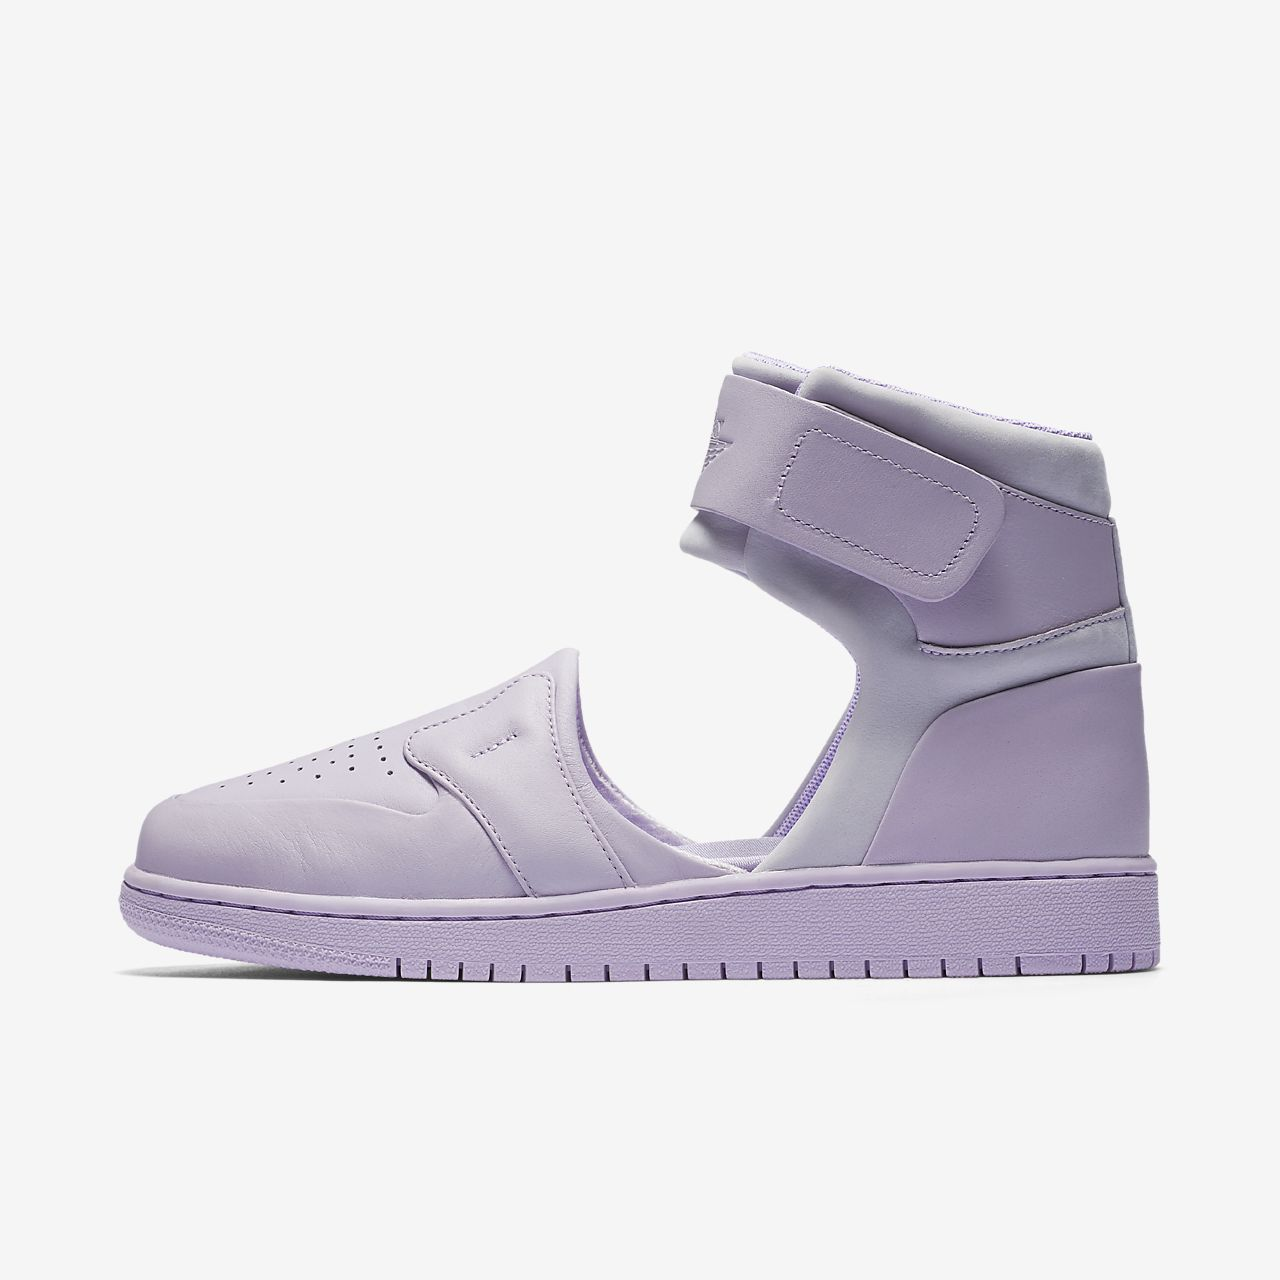 Jordan AJ1 Lover XX Women's Shoe